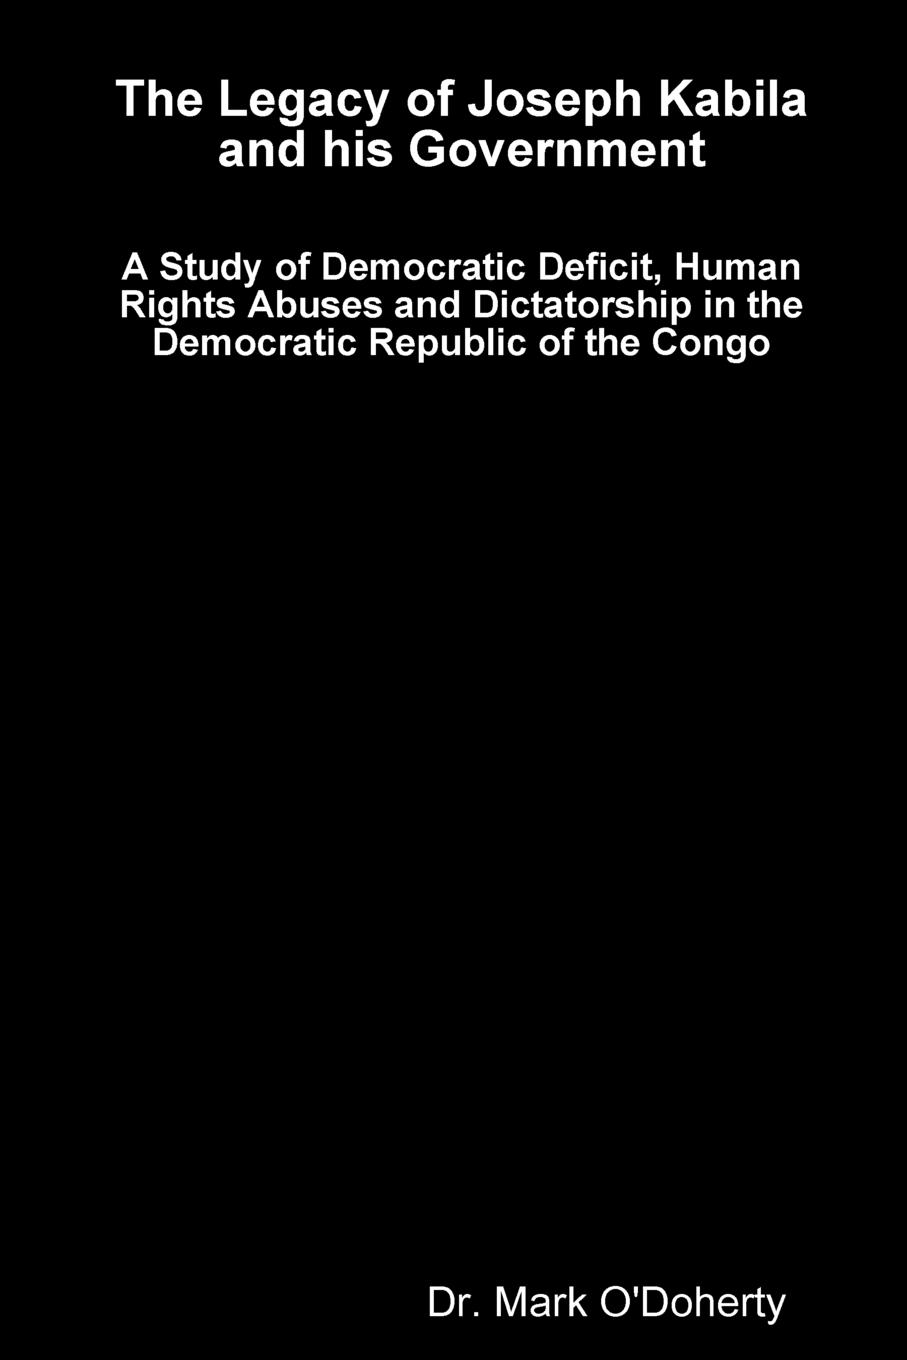 Dr. Mark O'Doherty The Legacy of Joseph Kabila and his Government . A Study of Democratic Deficit, Human Rights Abuses and Dictatorship in the Democratic Republic of the Congo